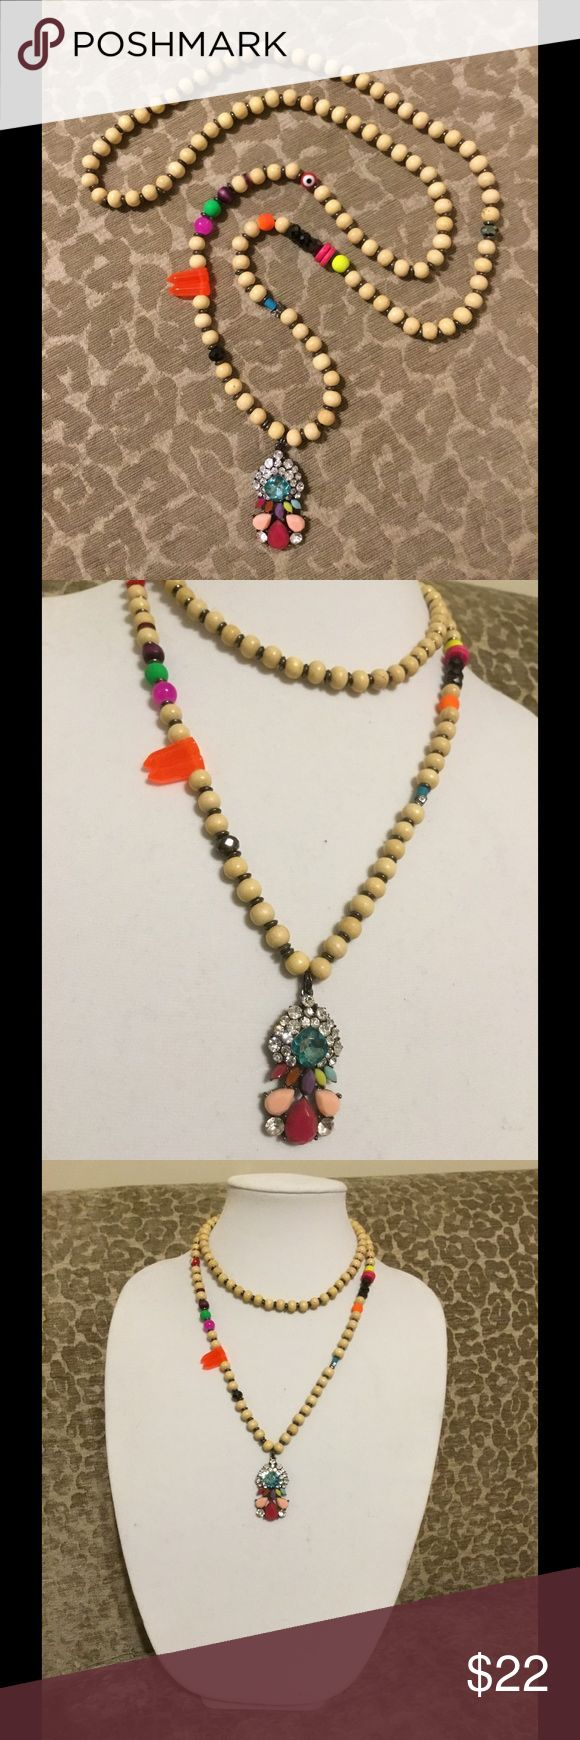 Single or Double Wrap Neon Festival Necklace Really playful, lightweight, versatile beaded petite pendant necklace! Mostly wooden beads but also resin and metal beads with a colorful, abstract rhinestone pendant. Purchased at Nordstrom, brand new, never worn! Baublebar Jewelry Necklaces